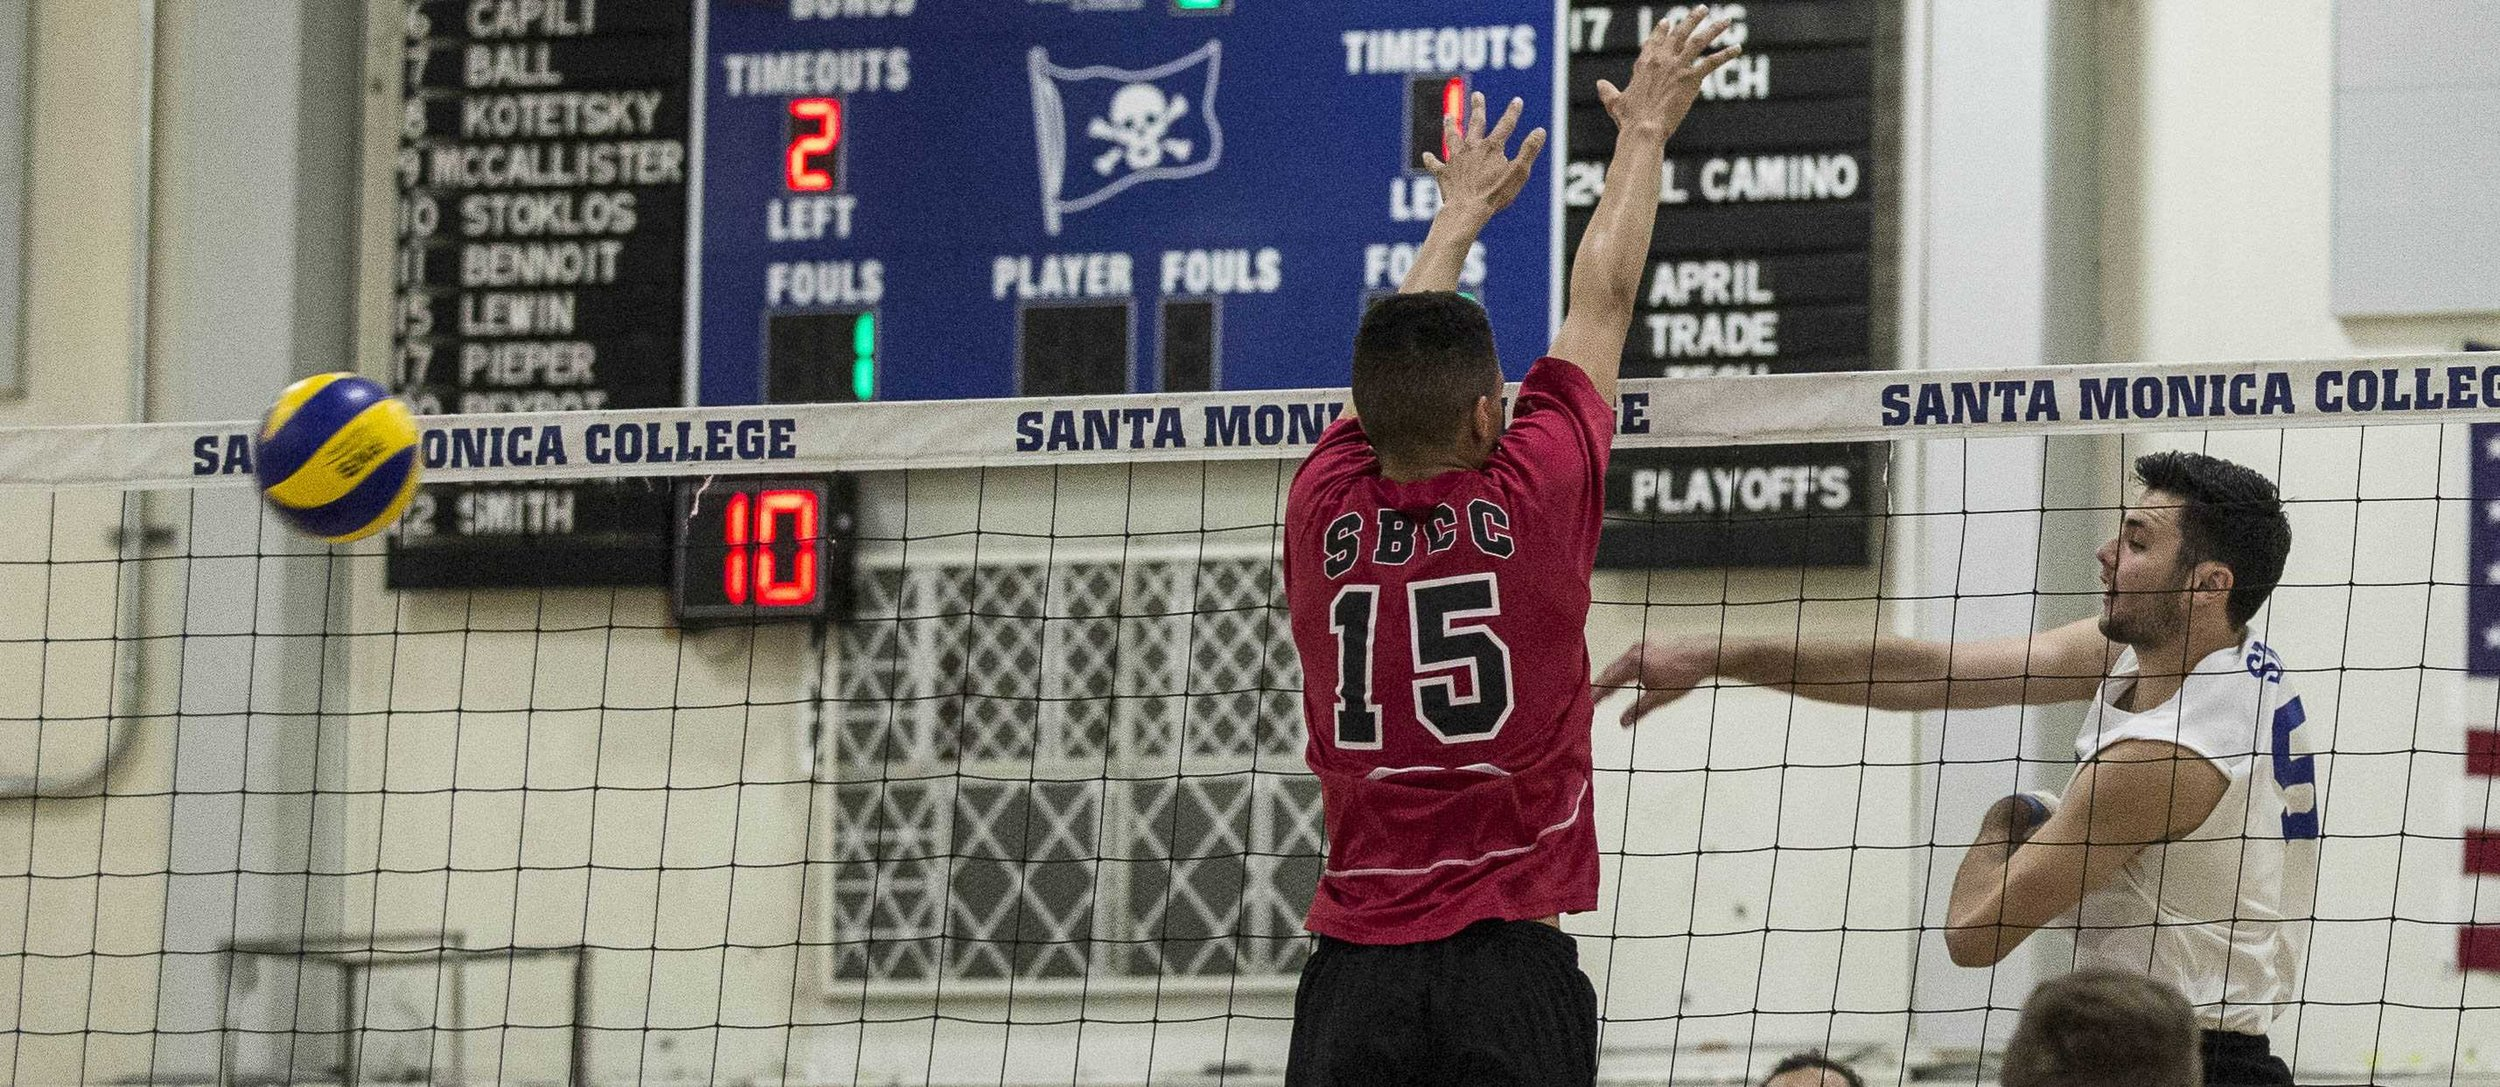 Santa Monica College Corsair freshmen right-side hitter Andrew Dalmada (5, right) successfully attempts a powerful spike as Santa Barbara Vaqueros freshman middle blocker (15, left) fails to defensively block the ball, allowing the Corsairs to score a point during the second set of the game in the Santa Monica College Gymnasium at Santa Monica College in Santa Monica California on March 15, 2017. The Santa Monica Corsairs were able to sweep the Santa Barbara Vaqueros 3-0 by the end of the game. (Corsair Photo: Matthew Martin)